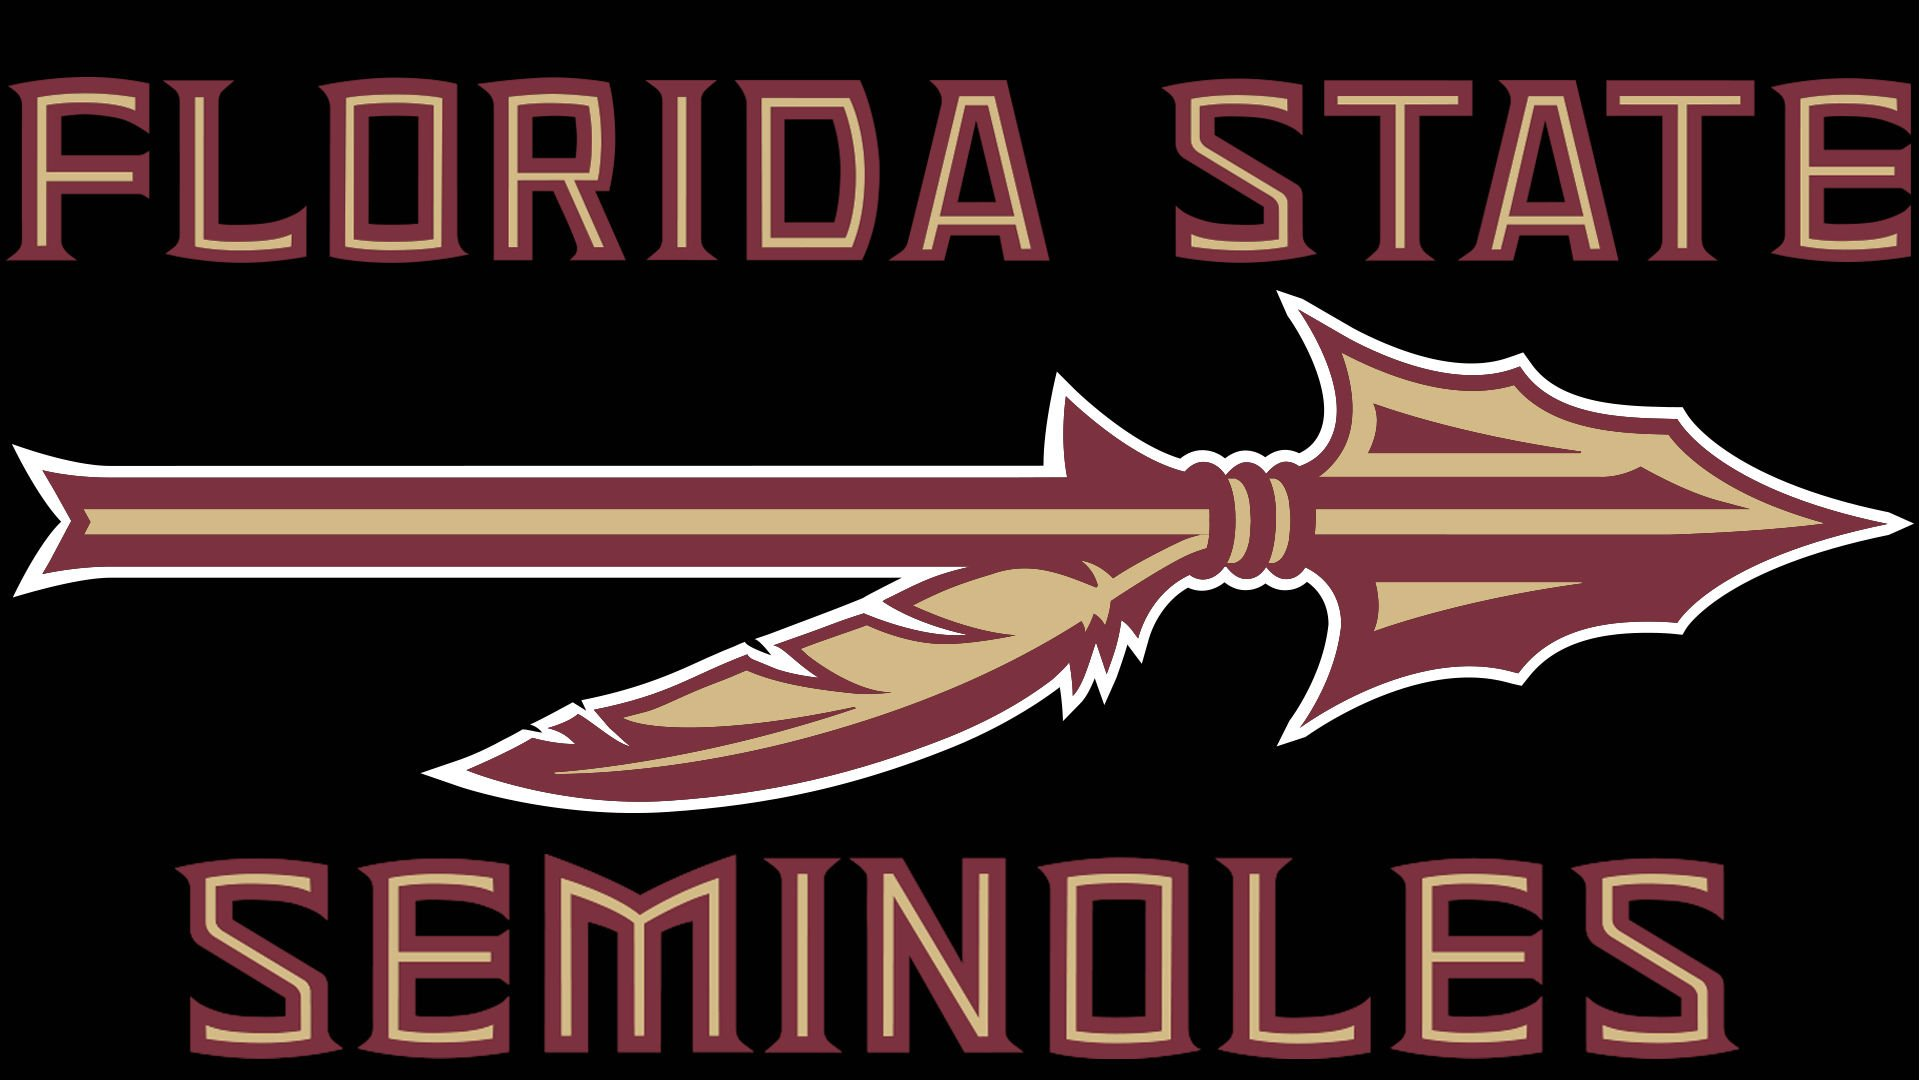 Florida state football wallpapers wallpapersafari florida state seminoles college football wallpaper 1920x1080 voltagebd Choice Image